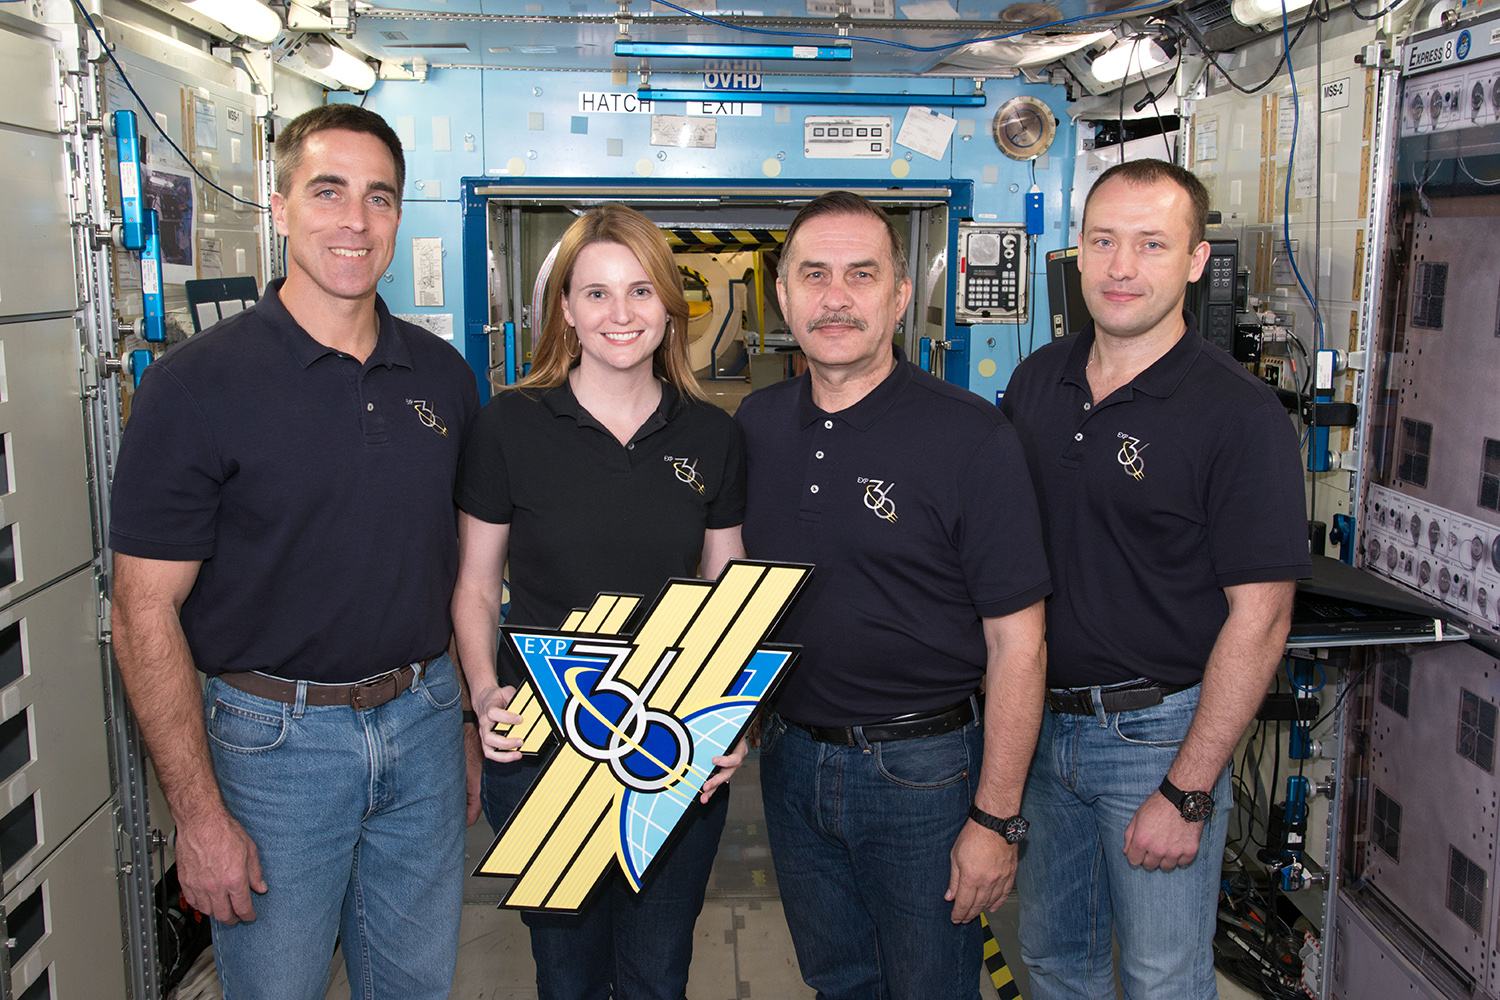 Buchli with three members of the crew of the International Space Station in 2012.